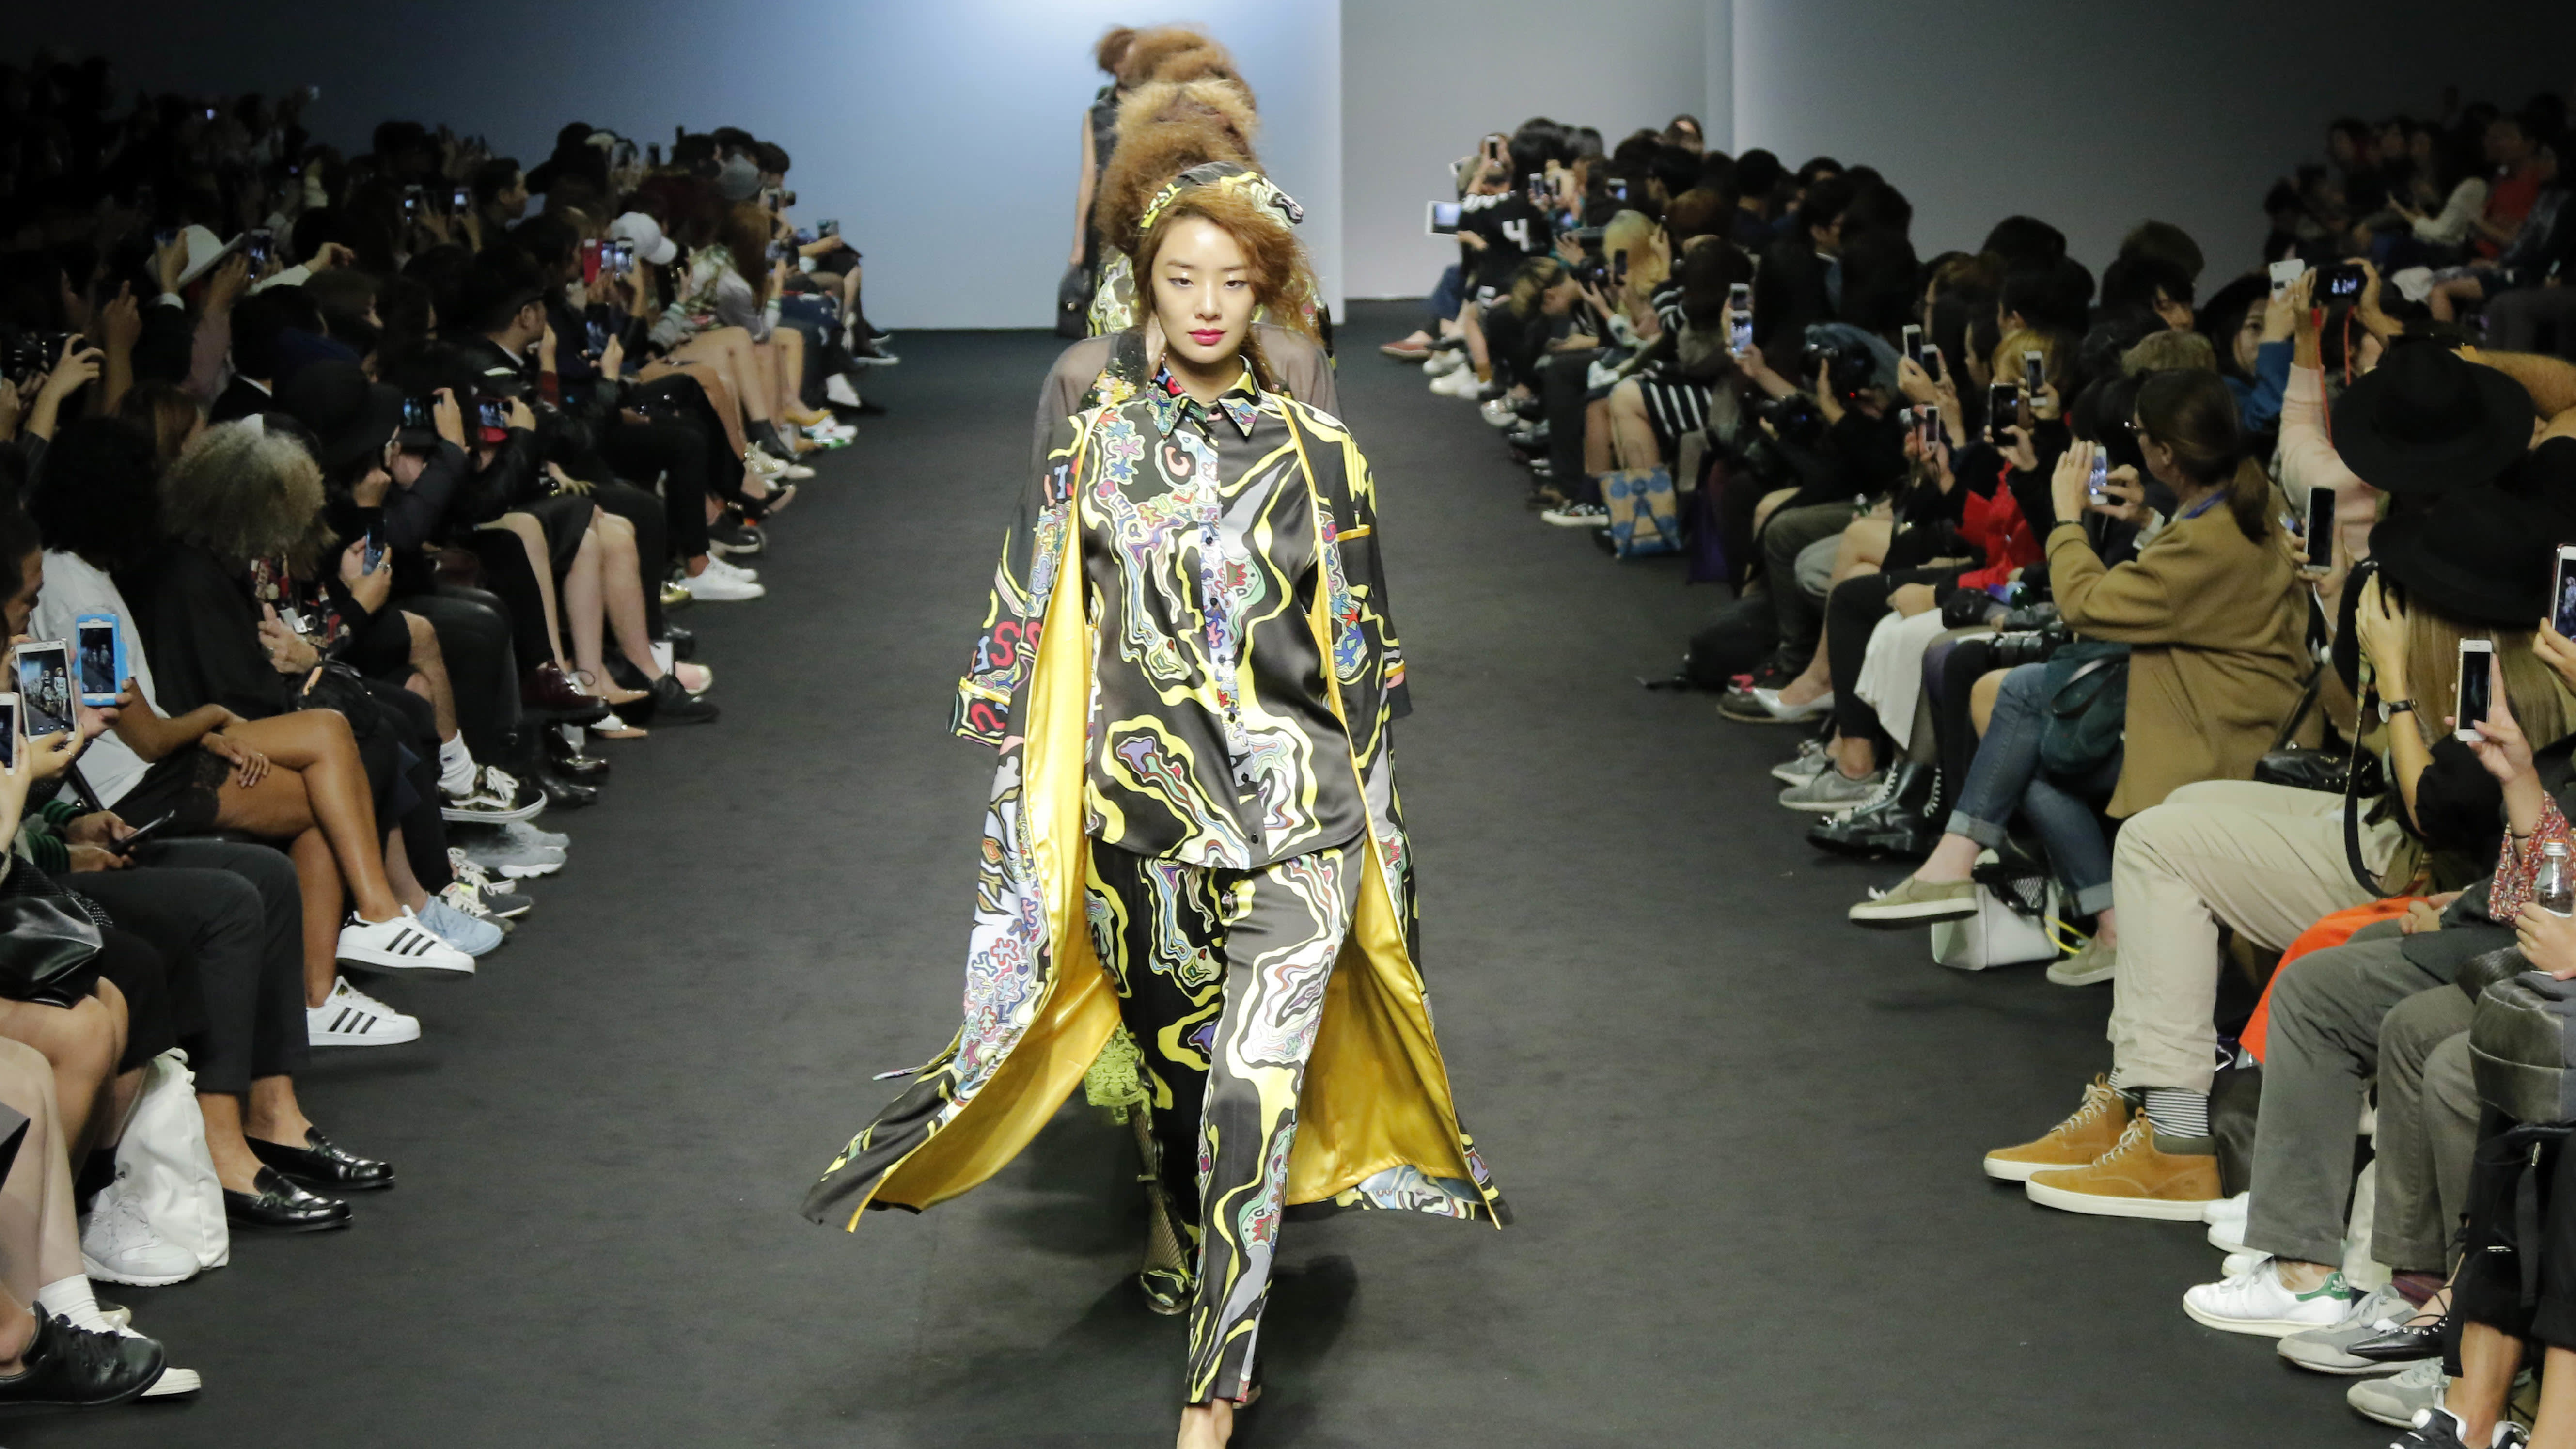 South Korean Cool Clothes Are Hot Sellers In Japan Nikkei Asian Review